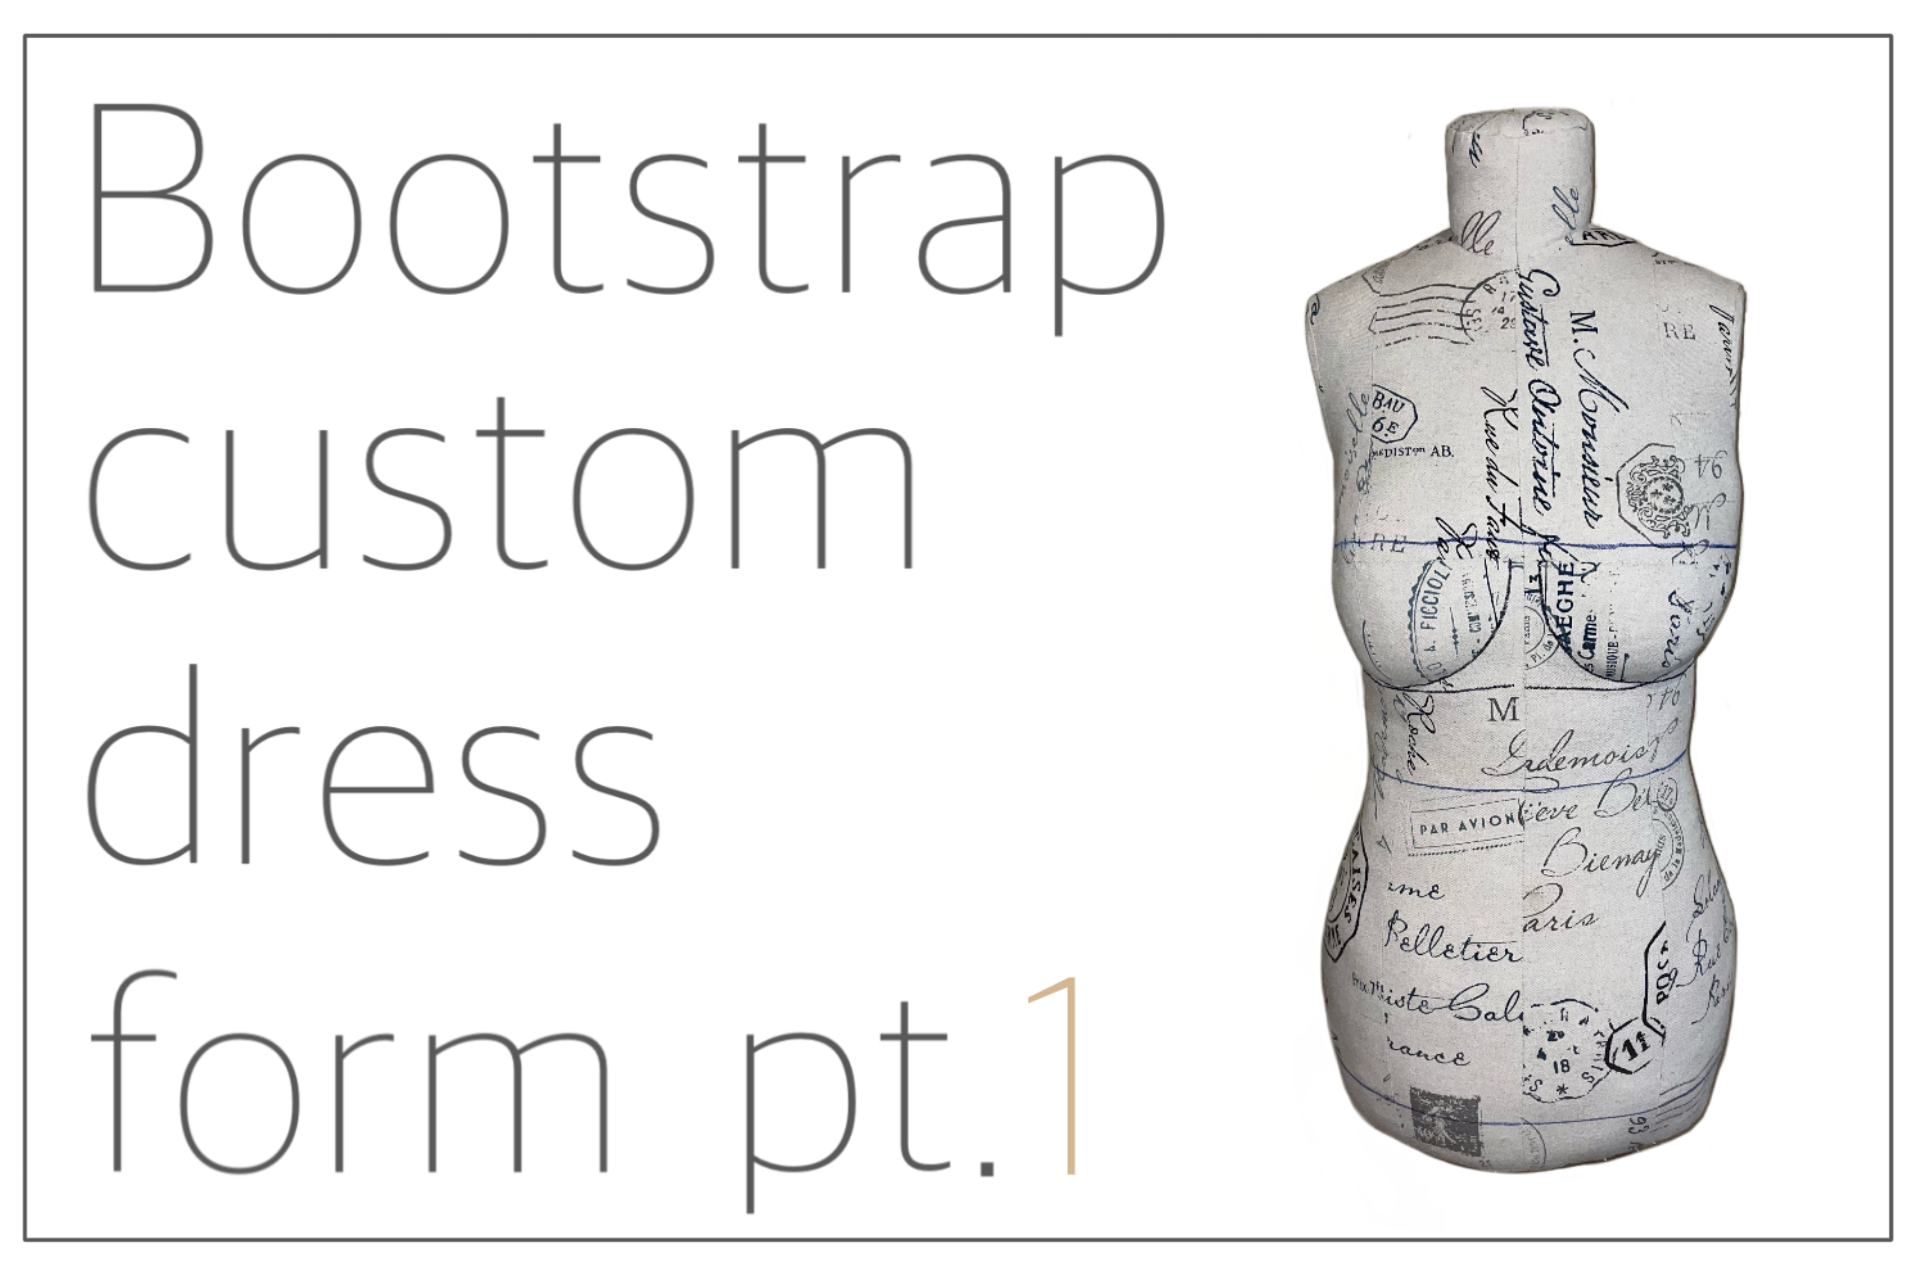 You are currently viewing Bootstrap custom dress form pt. 1